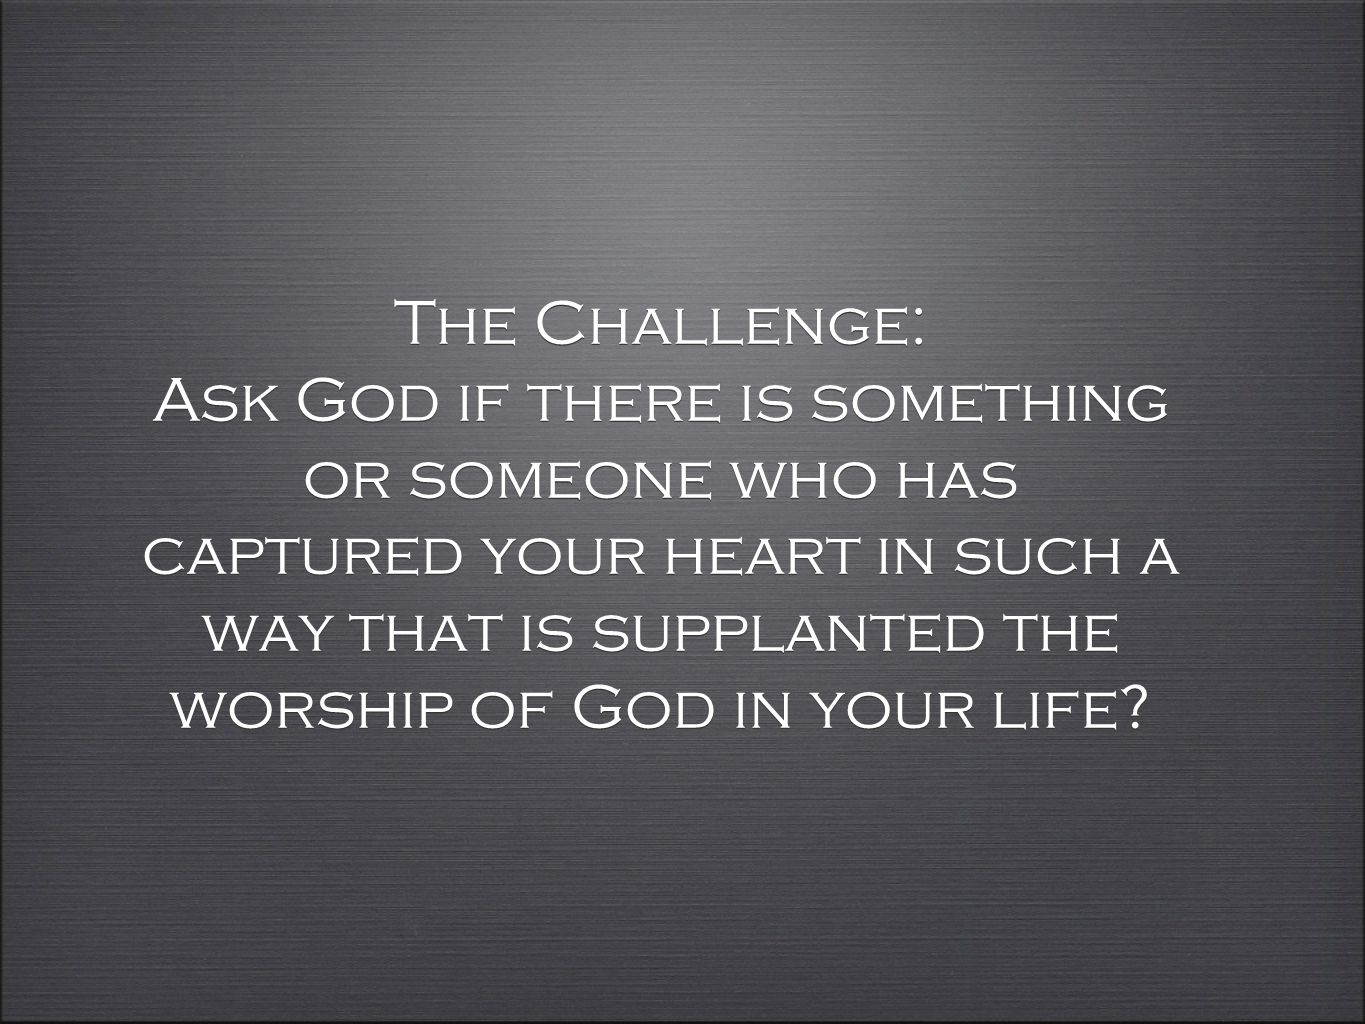 The Challenge: Ask God if there is something or someone who has captured your heart in such a way that is supplanted the worship of God in your life?